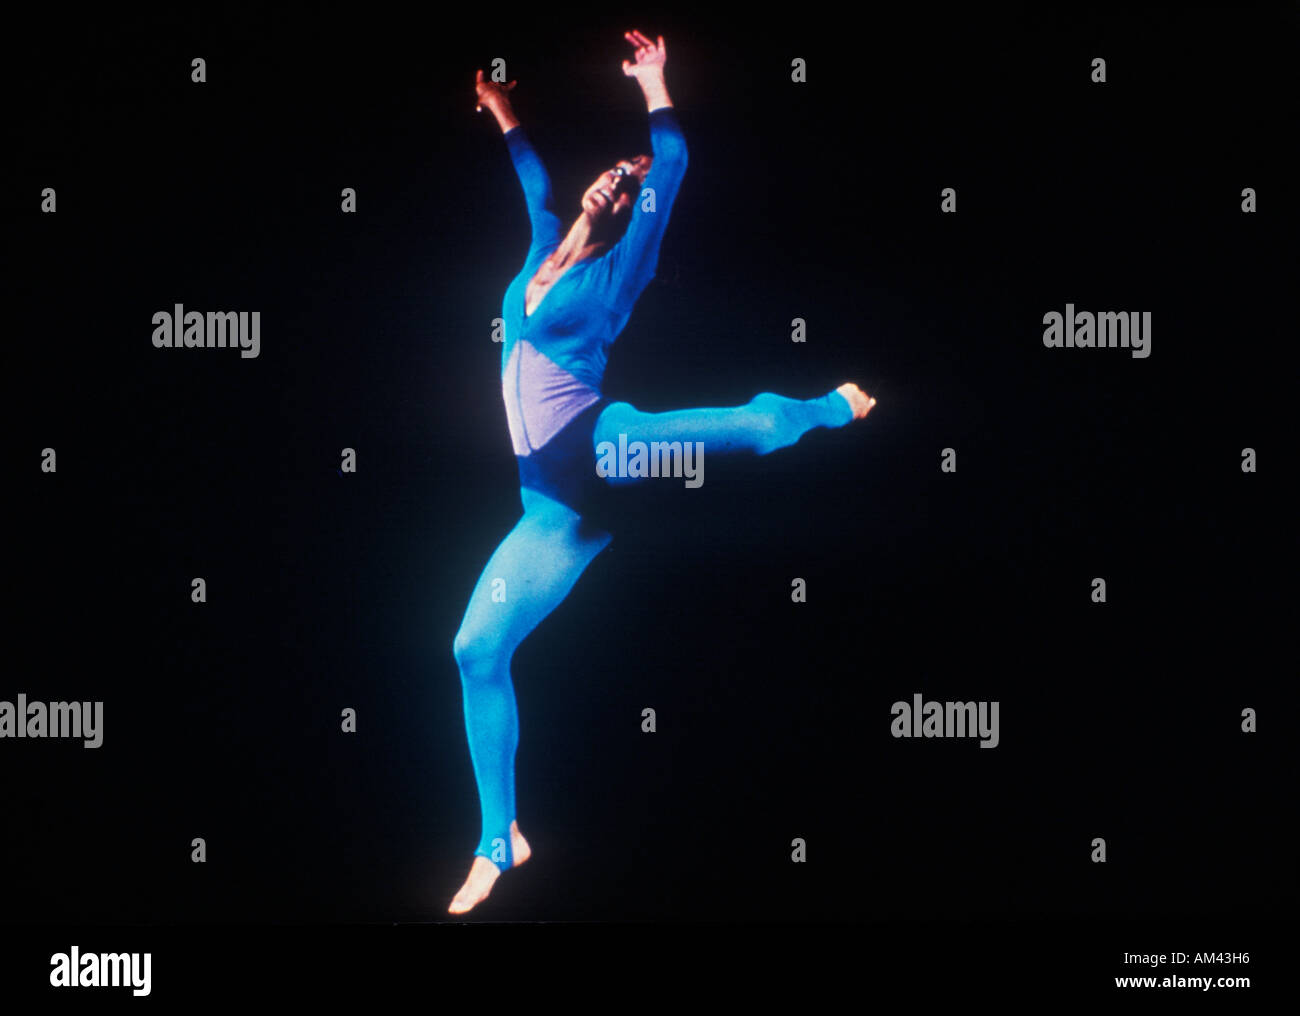 A dancer stretching on a darkened stage - Stock Image